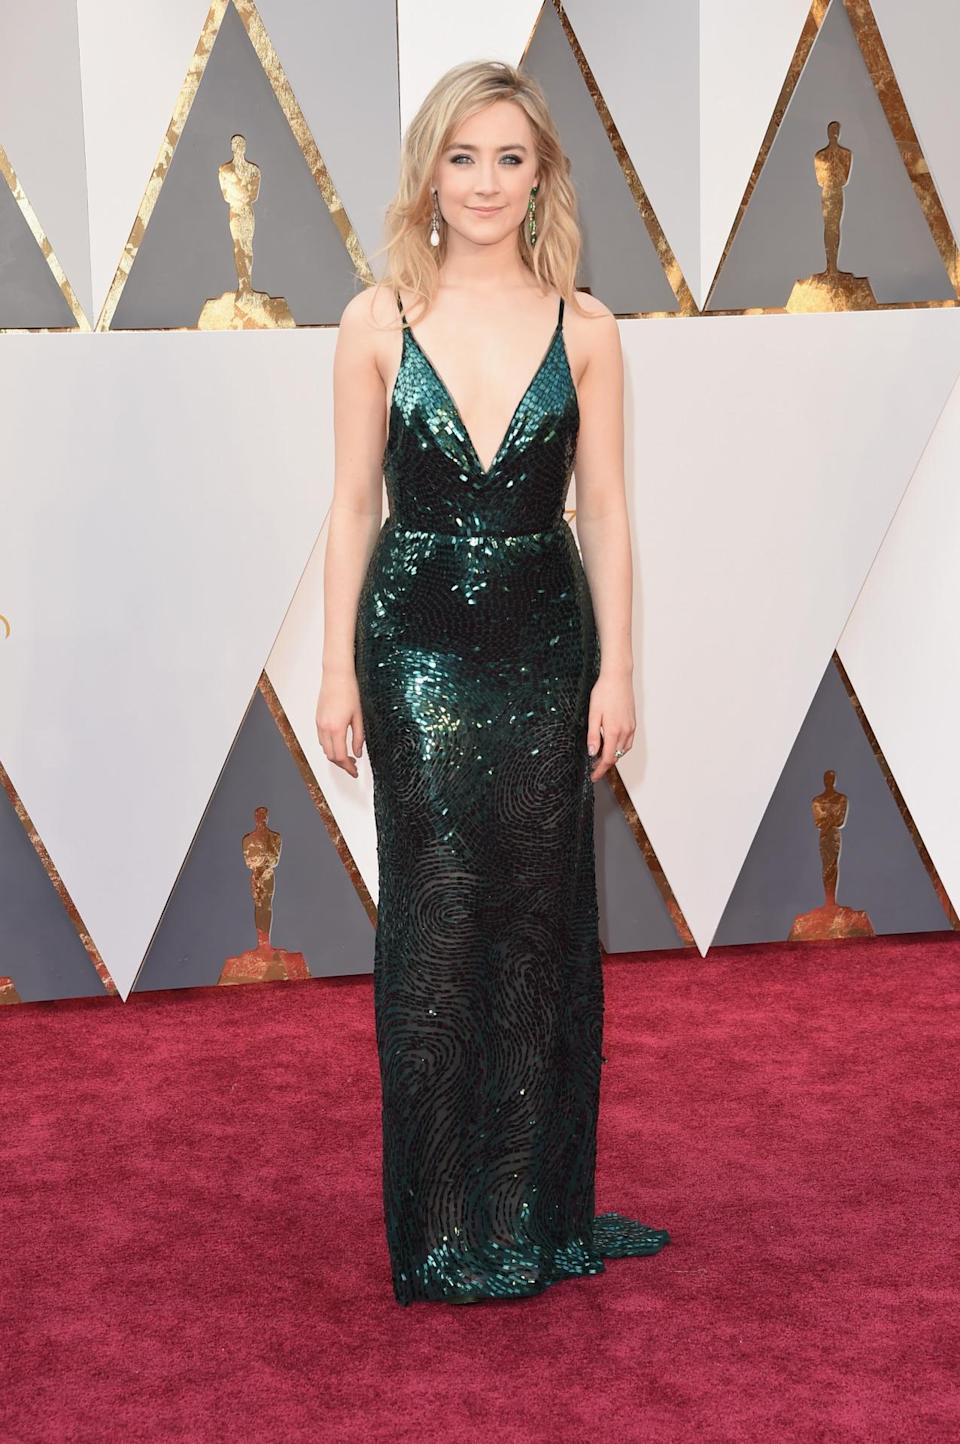 <p>Saoirse Ronan wore an emerald green Calvin Klein Collection gown to honor her home country of Ireland. To take the sequin look to the next level, she also accessorized with mismatched earrings from Chopard: One is made of 18-carat emeralds and the other of 5.7-carat jadeite.<i> <i>(Photo: Getty Images)</i></i></p>